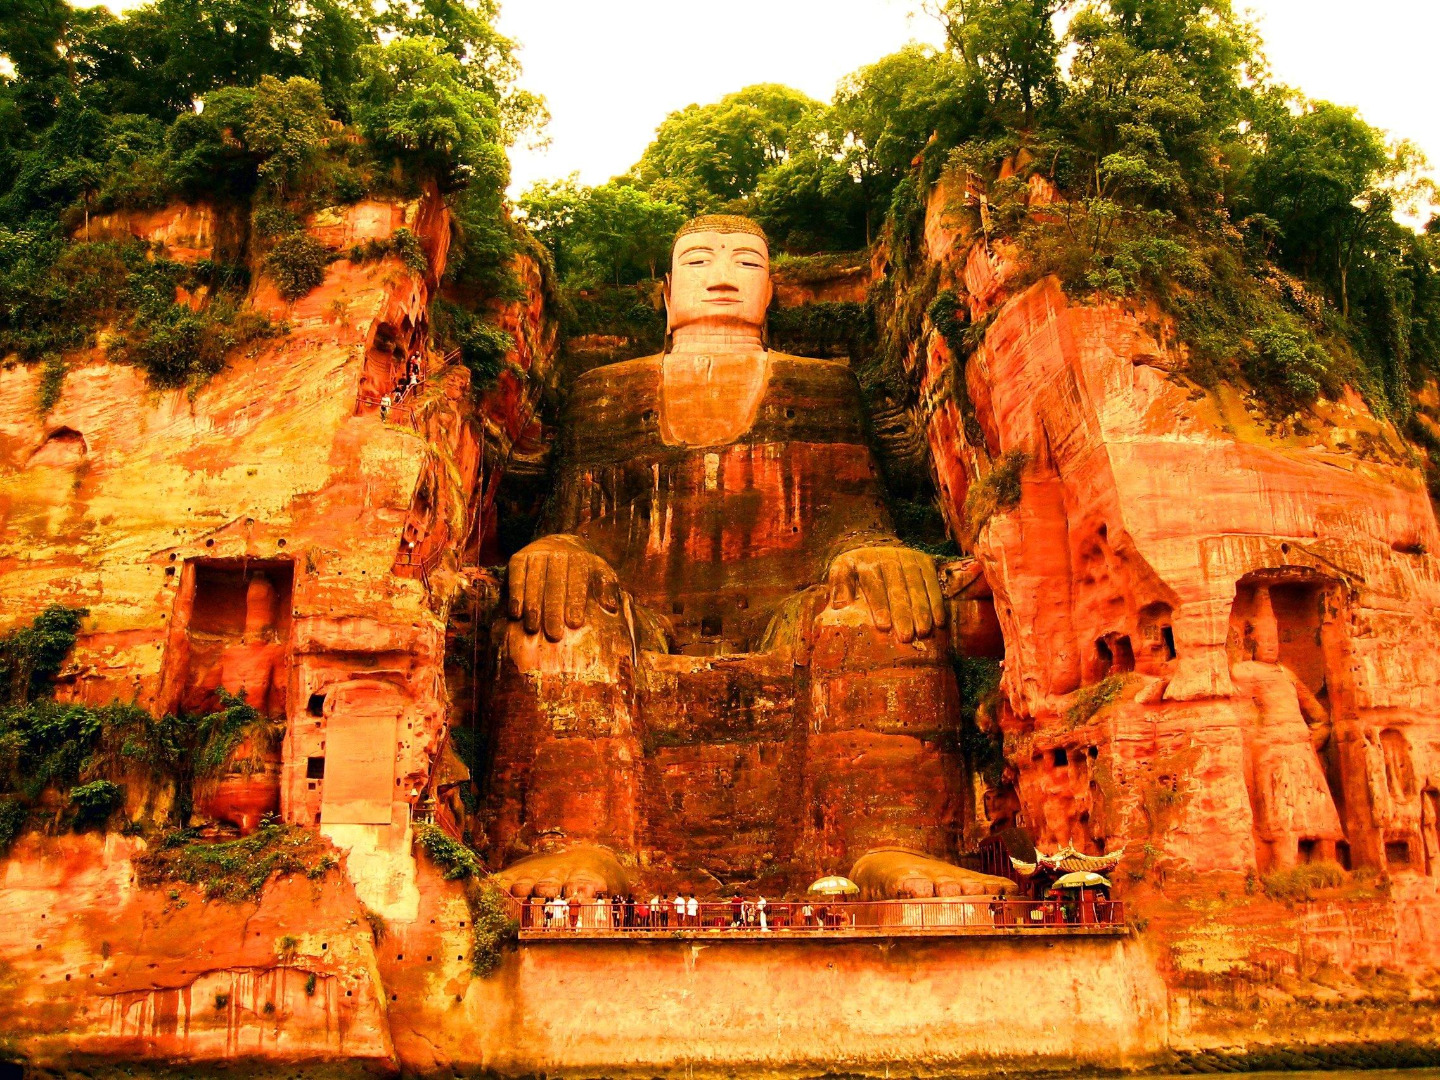 Picture from globeimages.   The Leshan Giant Buddha is a 71-metre (233 ft) tall stone statue, built during the Tang Dynasty. It is carved out of a cliff face that lies at the confluence of the Minjiang, Dadu and Qingyi rivers in the southern part of Sichuan province in China, near the city of Leshan. The stone sculpture faces Mount Emei, with the rivers flowing below his feet. It is the largest stone Buddha in the world and it is by far the tallest pre-modern statue in the world.  The Mount Emei Scenic Area, including Leshan Giant Buddha Scenic Area has been listed as a UNESCO World Heritage Site since 1996.